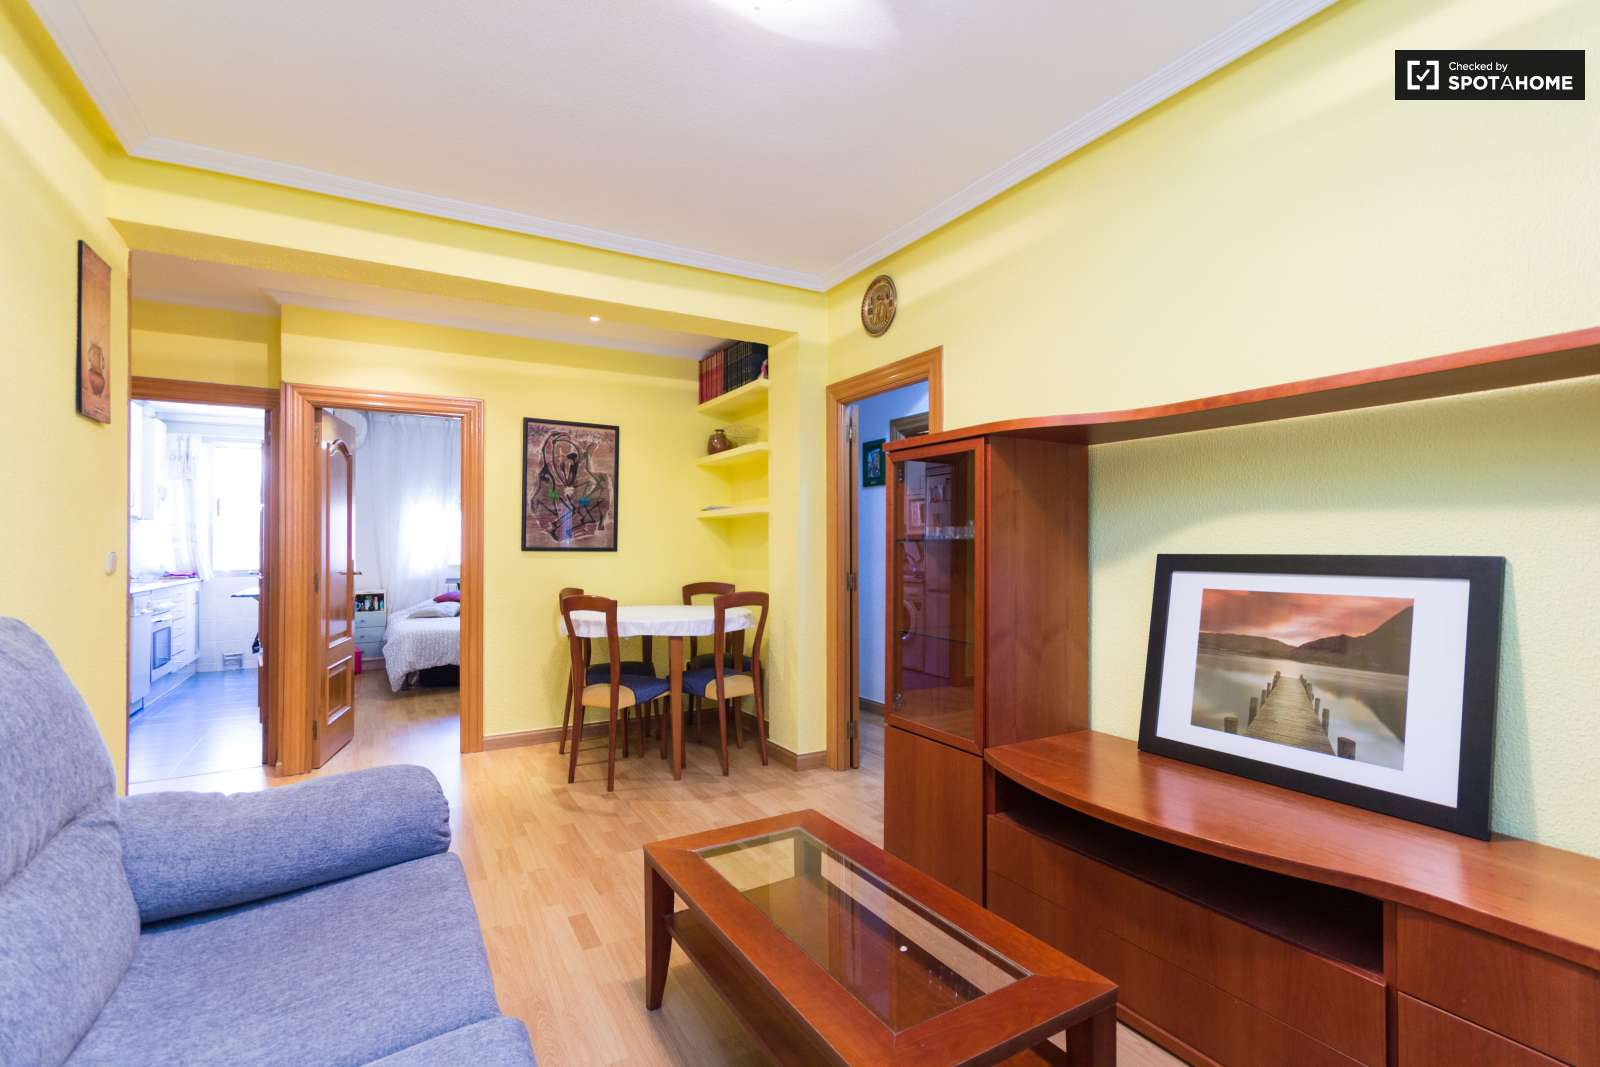 3 Bedroom Apartment With Heat And Ac In Moratalaz Madrid Ref  # Muebles Bizkaia Guenes